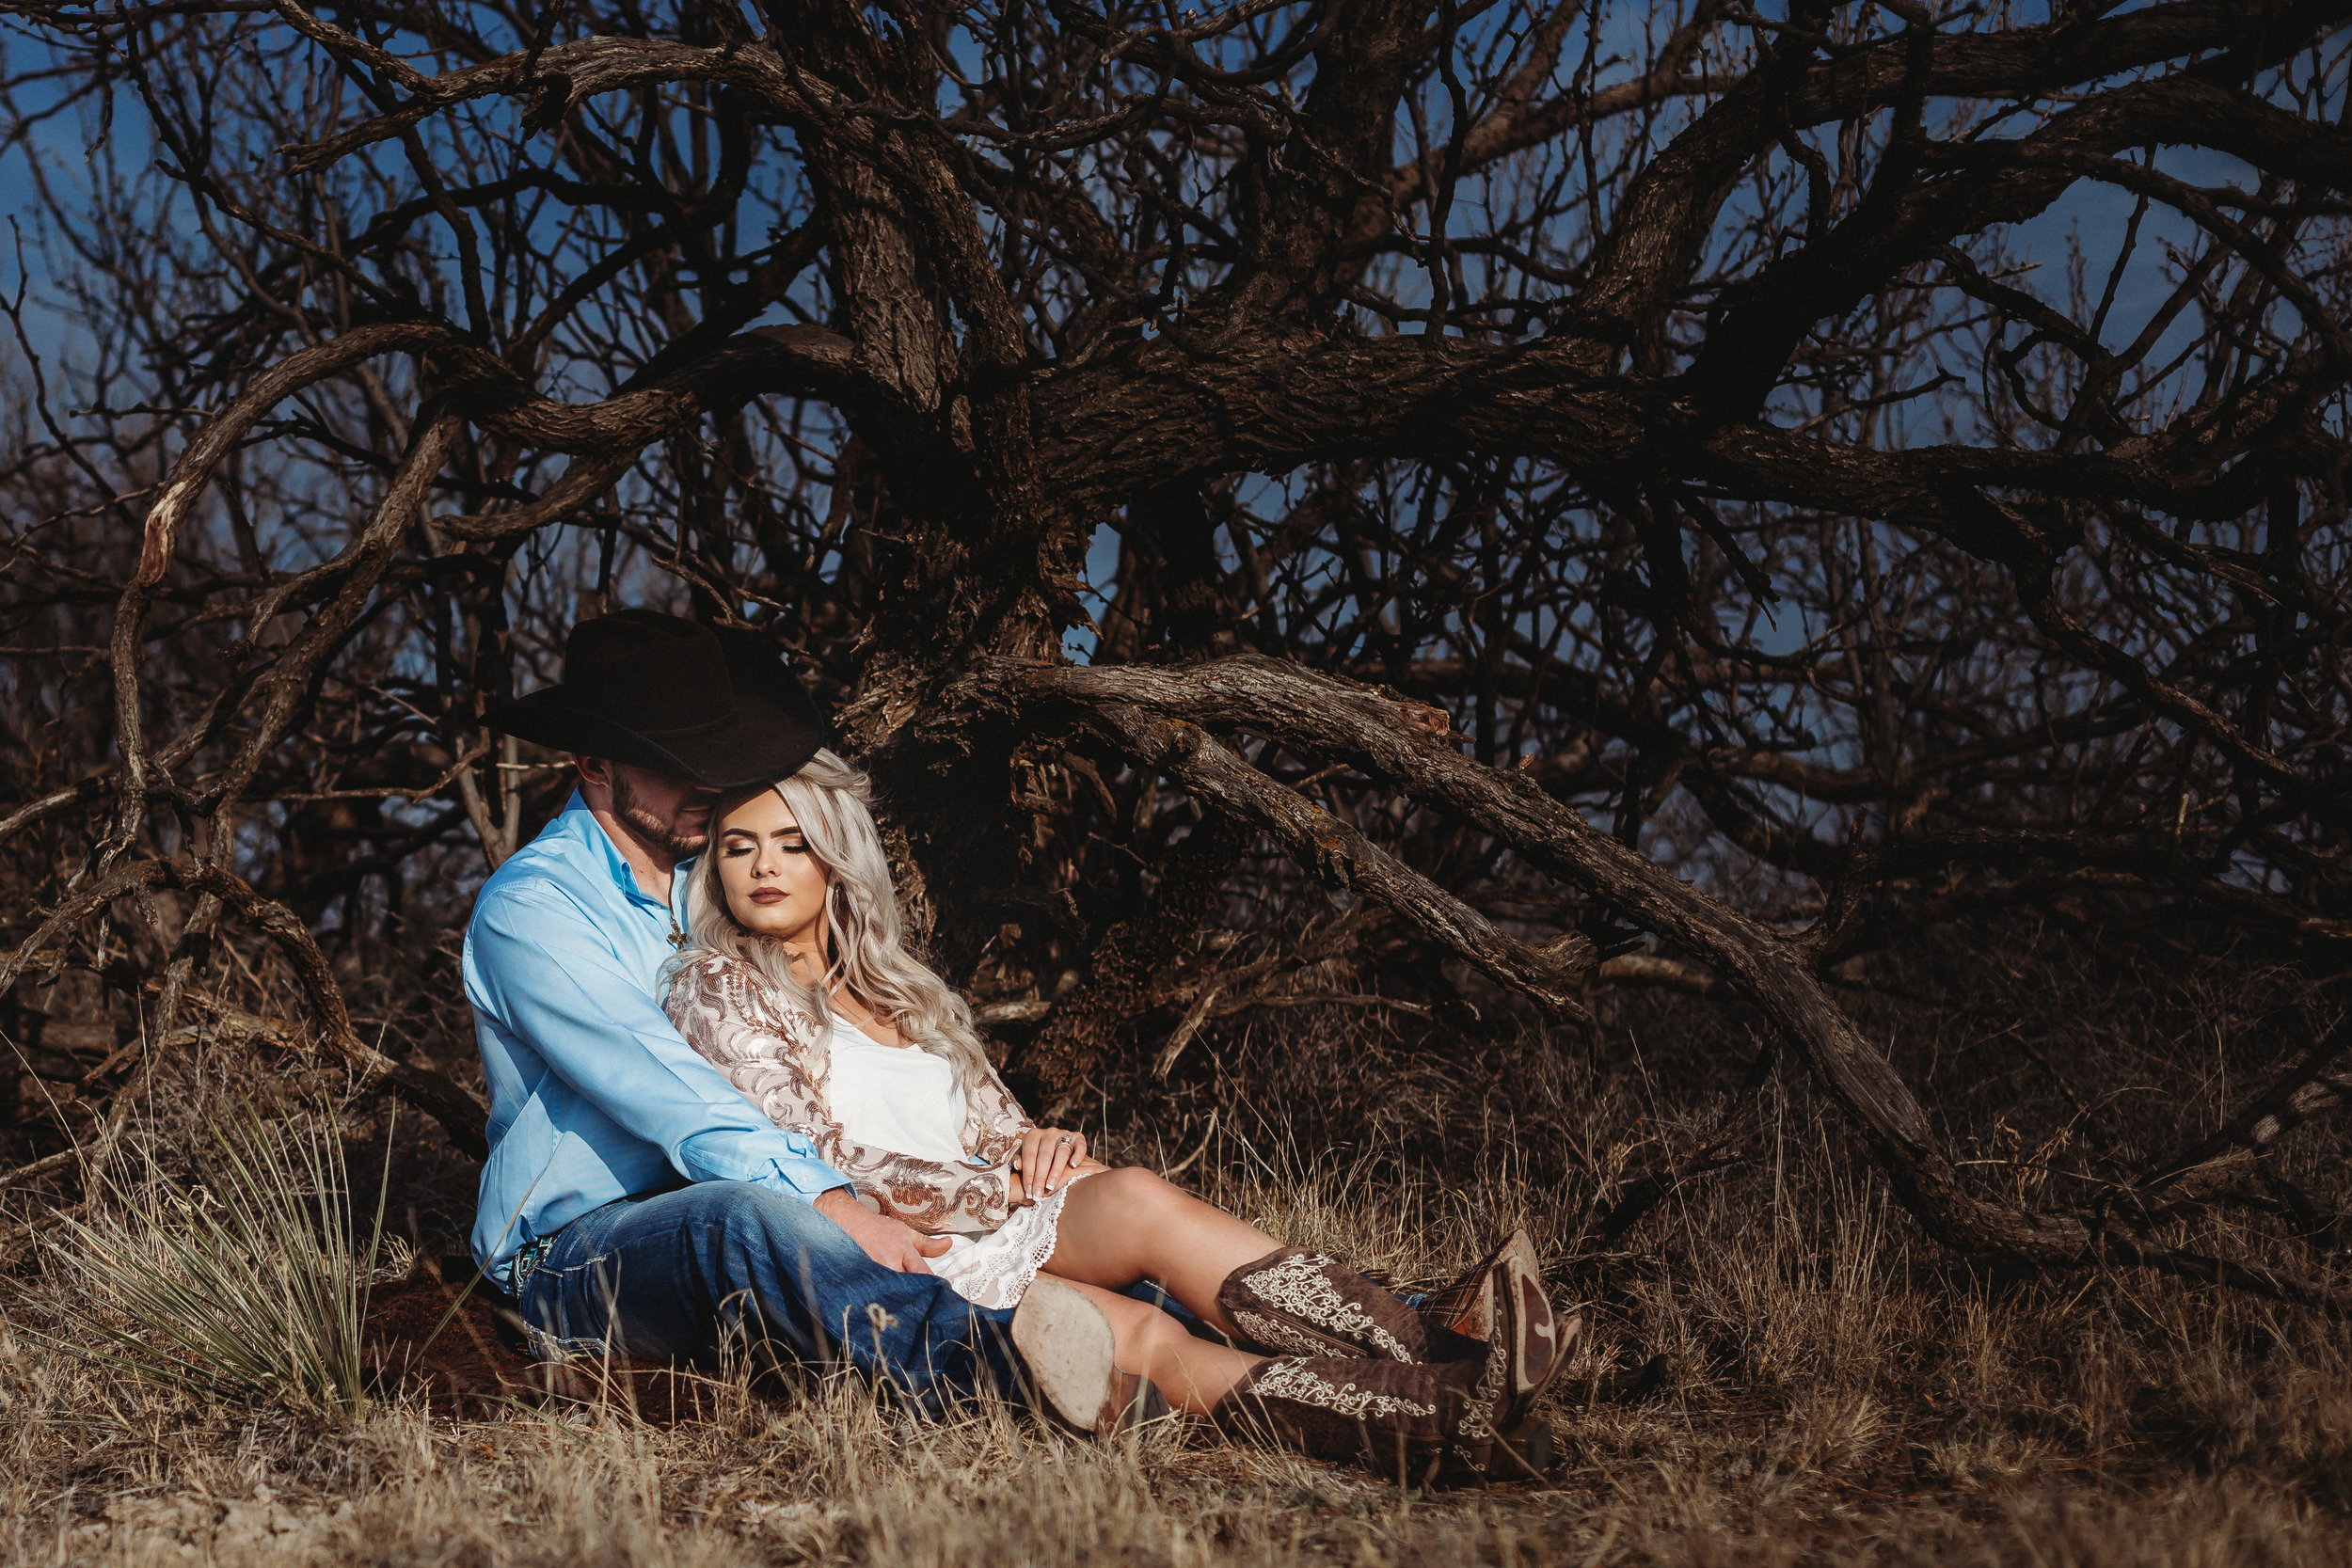 Distance shot of engaged couple sitting with bare trees behind them #engagementphotos #engaged #personality #amarillotexas #engagementphotographer #lifestylephotos #amarillophotographer #locationchoice #texasengagementphotos #engagment #tealawardphotography #westernstyle